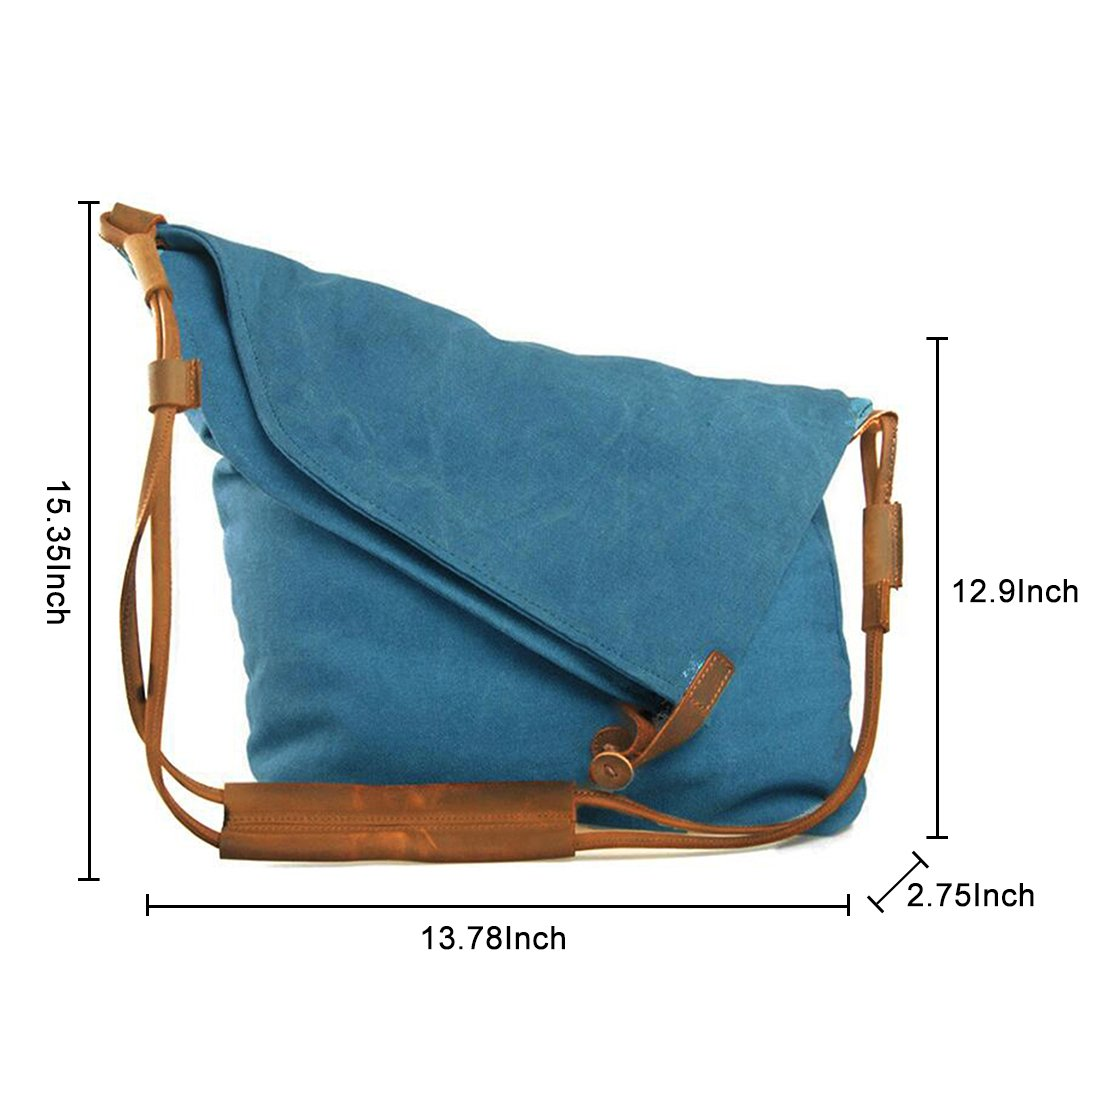 e4d906154e1f Amazon.com  FXTXYMX Hobo Bags Canvas Cross Body Messenger Bags Handbag  Totes Shoulder Purse Fold Over Bag for Men and Women (Blue)  Shoes